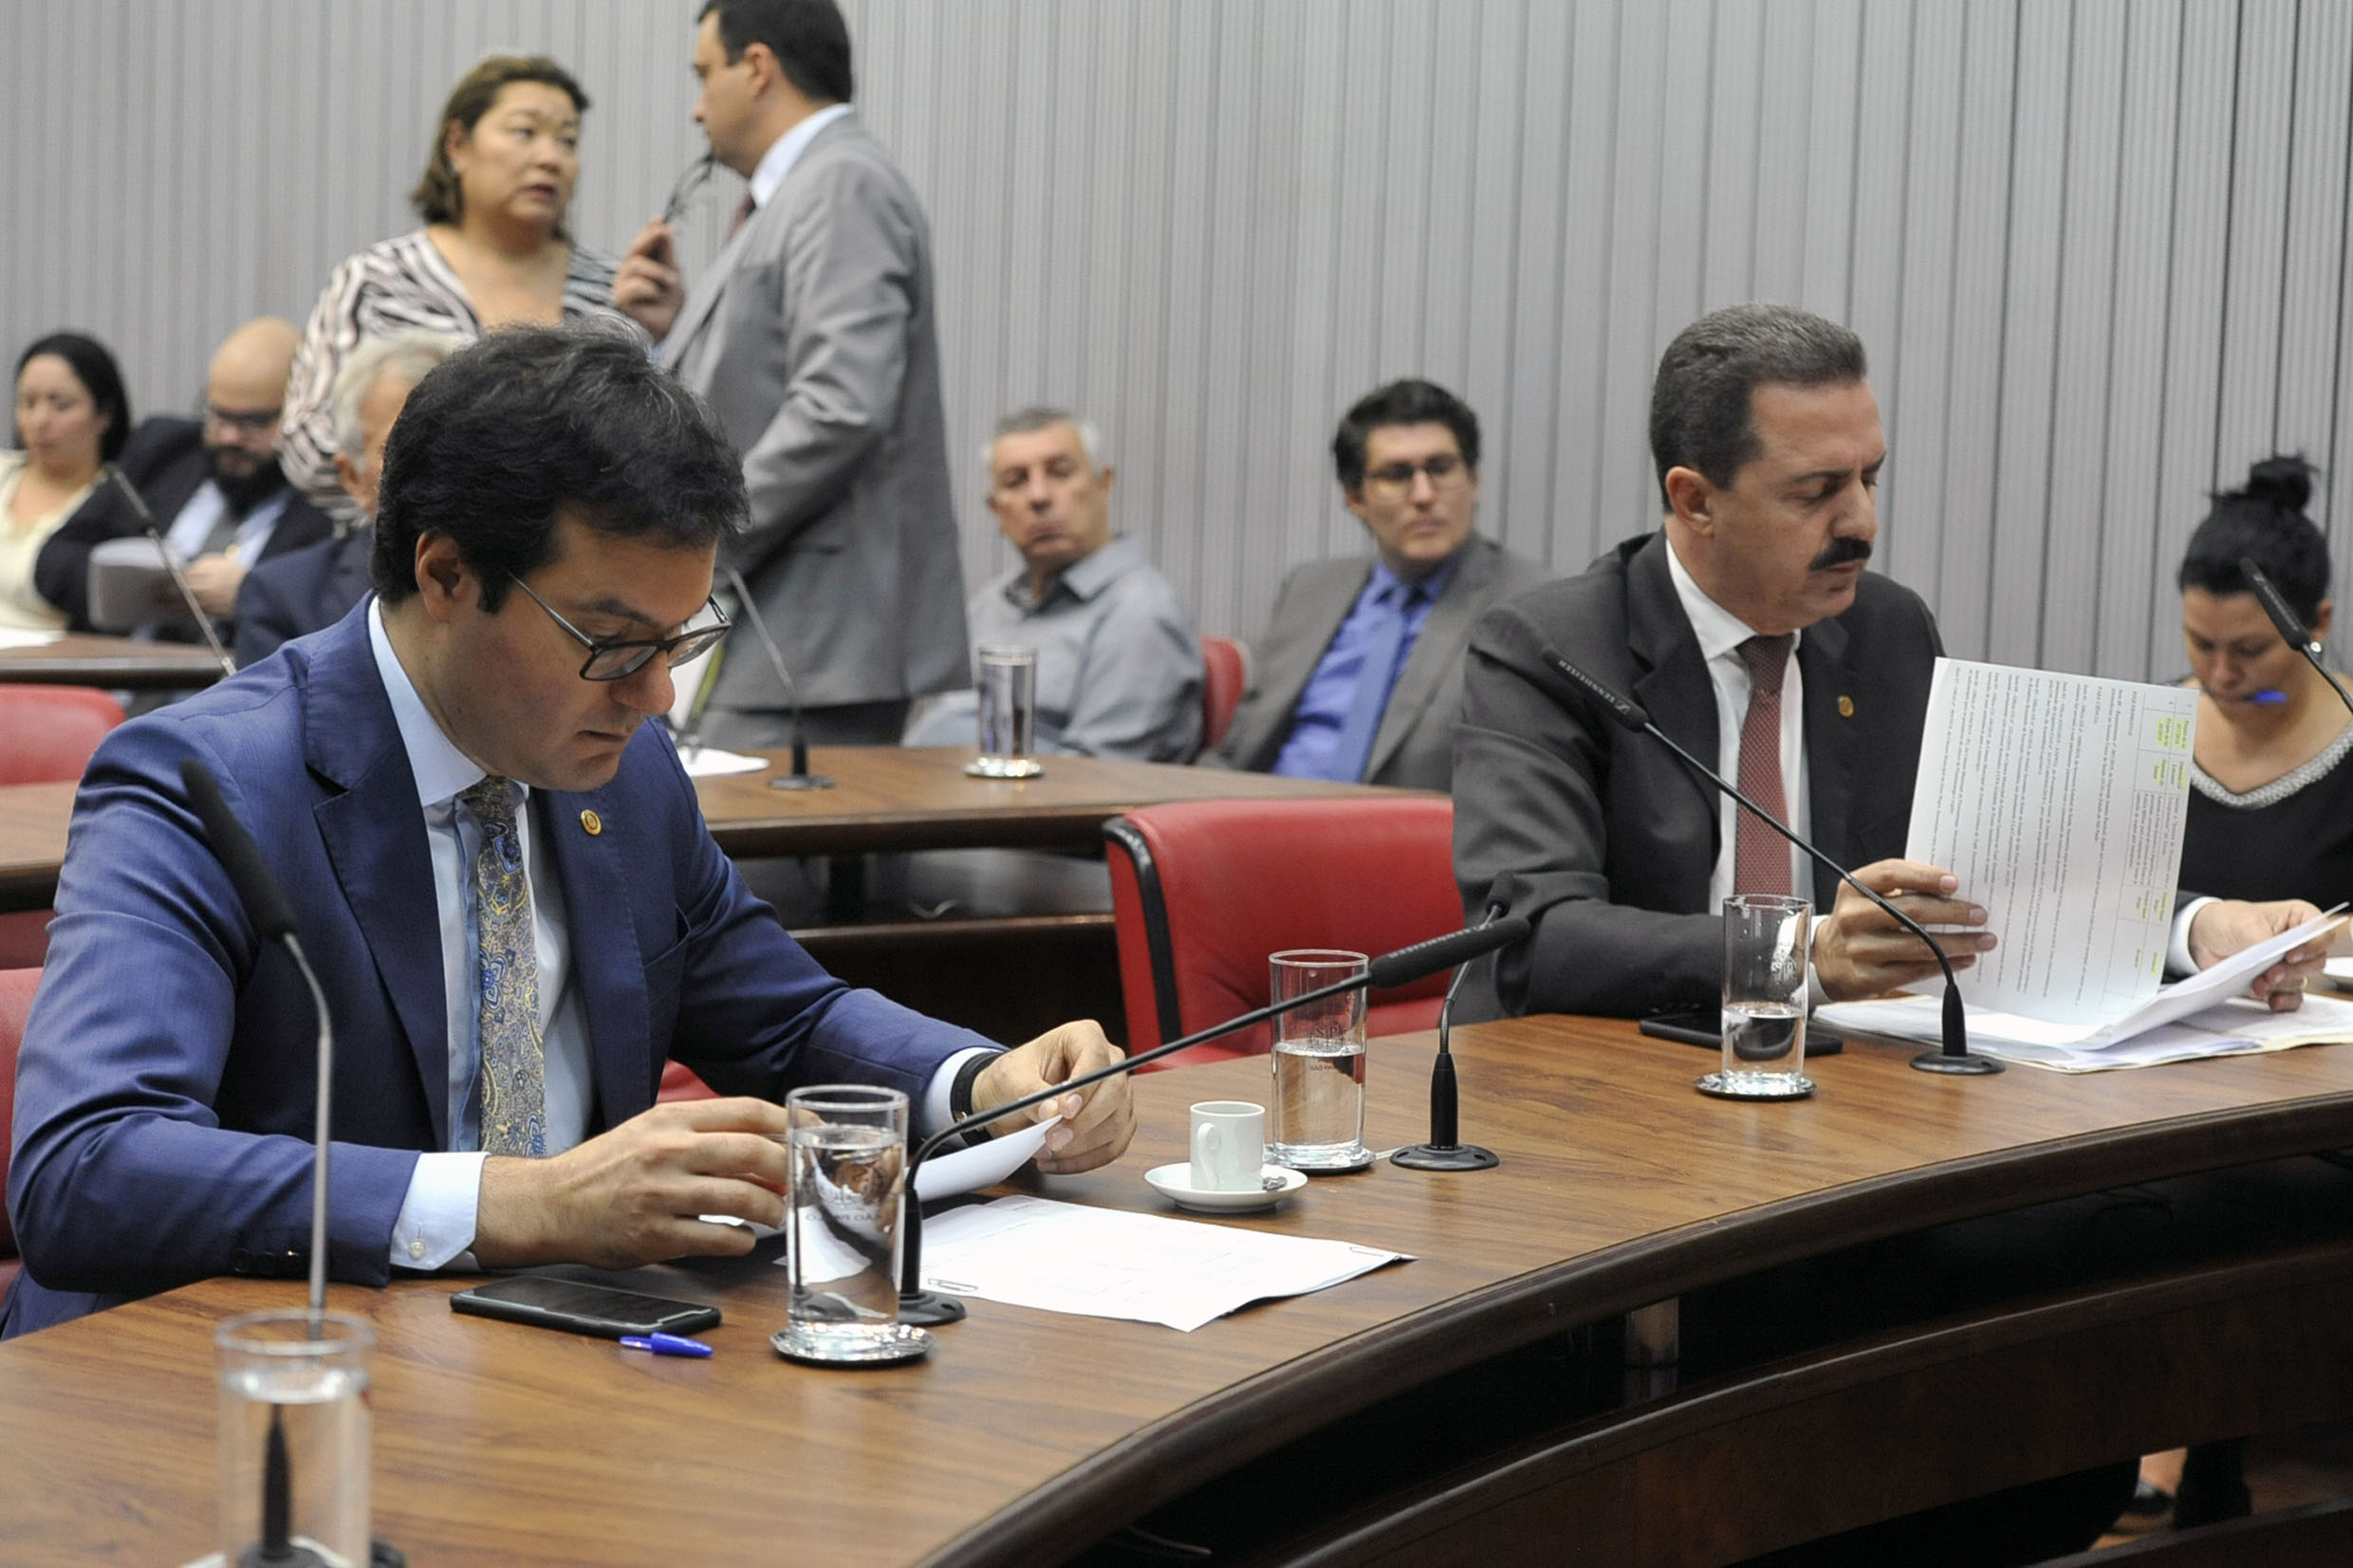 Parlamentares na comissão<a style='float:right' href='https://www3.al.sp.gov.br/repositorio/noticia/N-04-2019/fg233432.jpg' target=_blank><img src='/_img/material-file-download-white.png' width='14px' alt='Clique para baixar a imagem'></a>